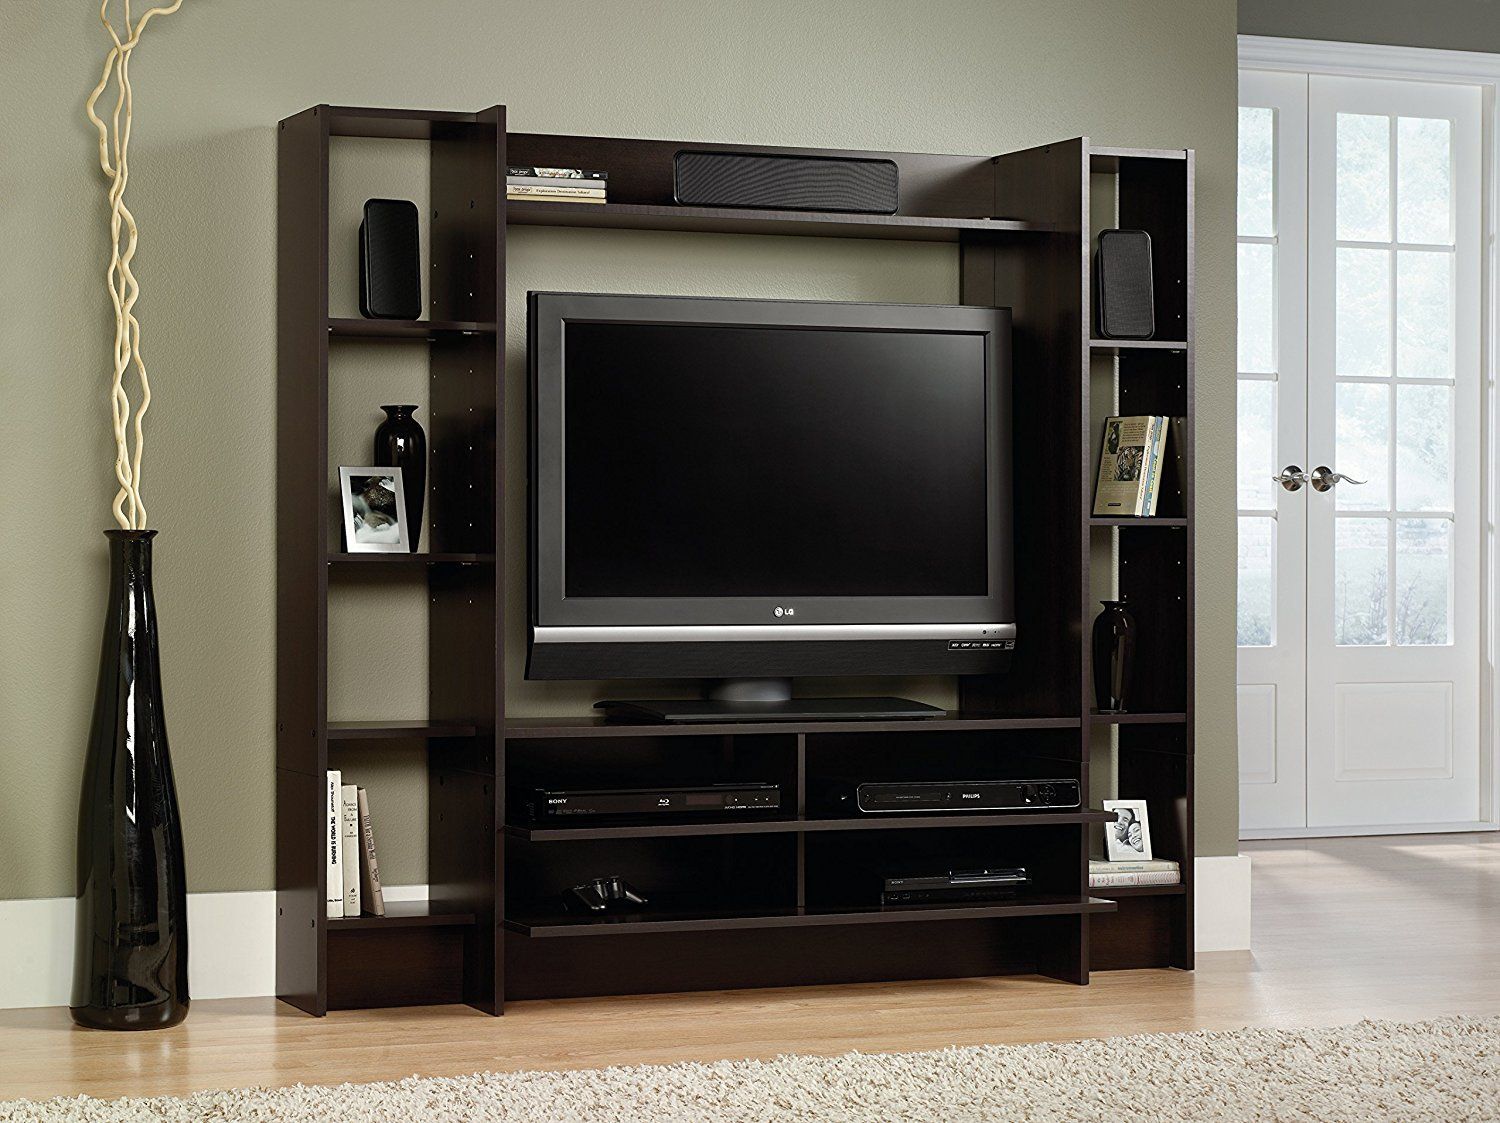 Details about home entertainment center storage cabinet wood tv stand media console furniture